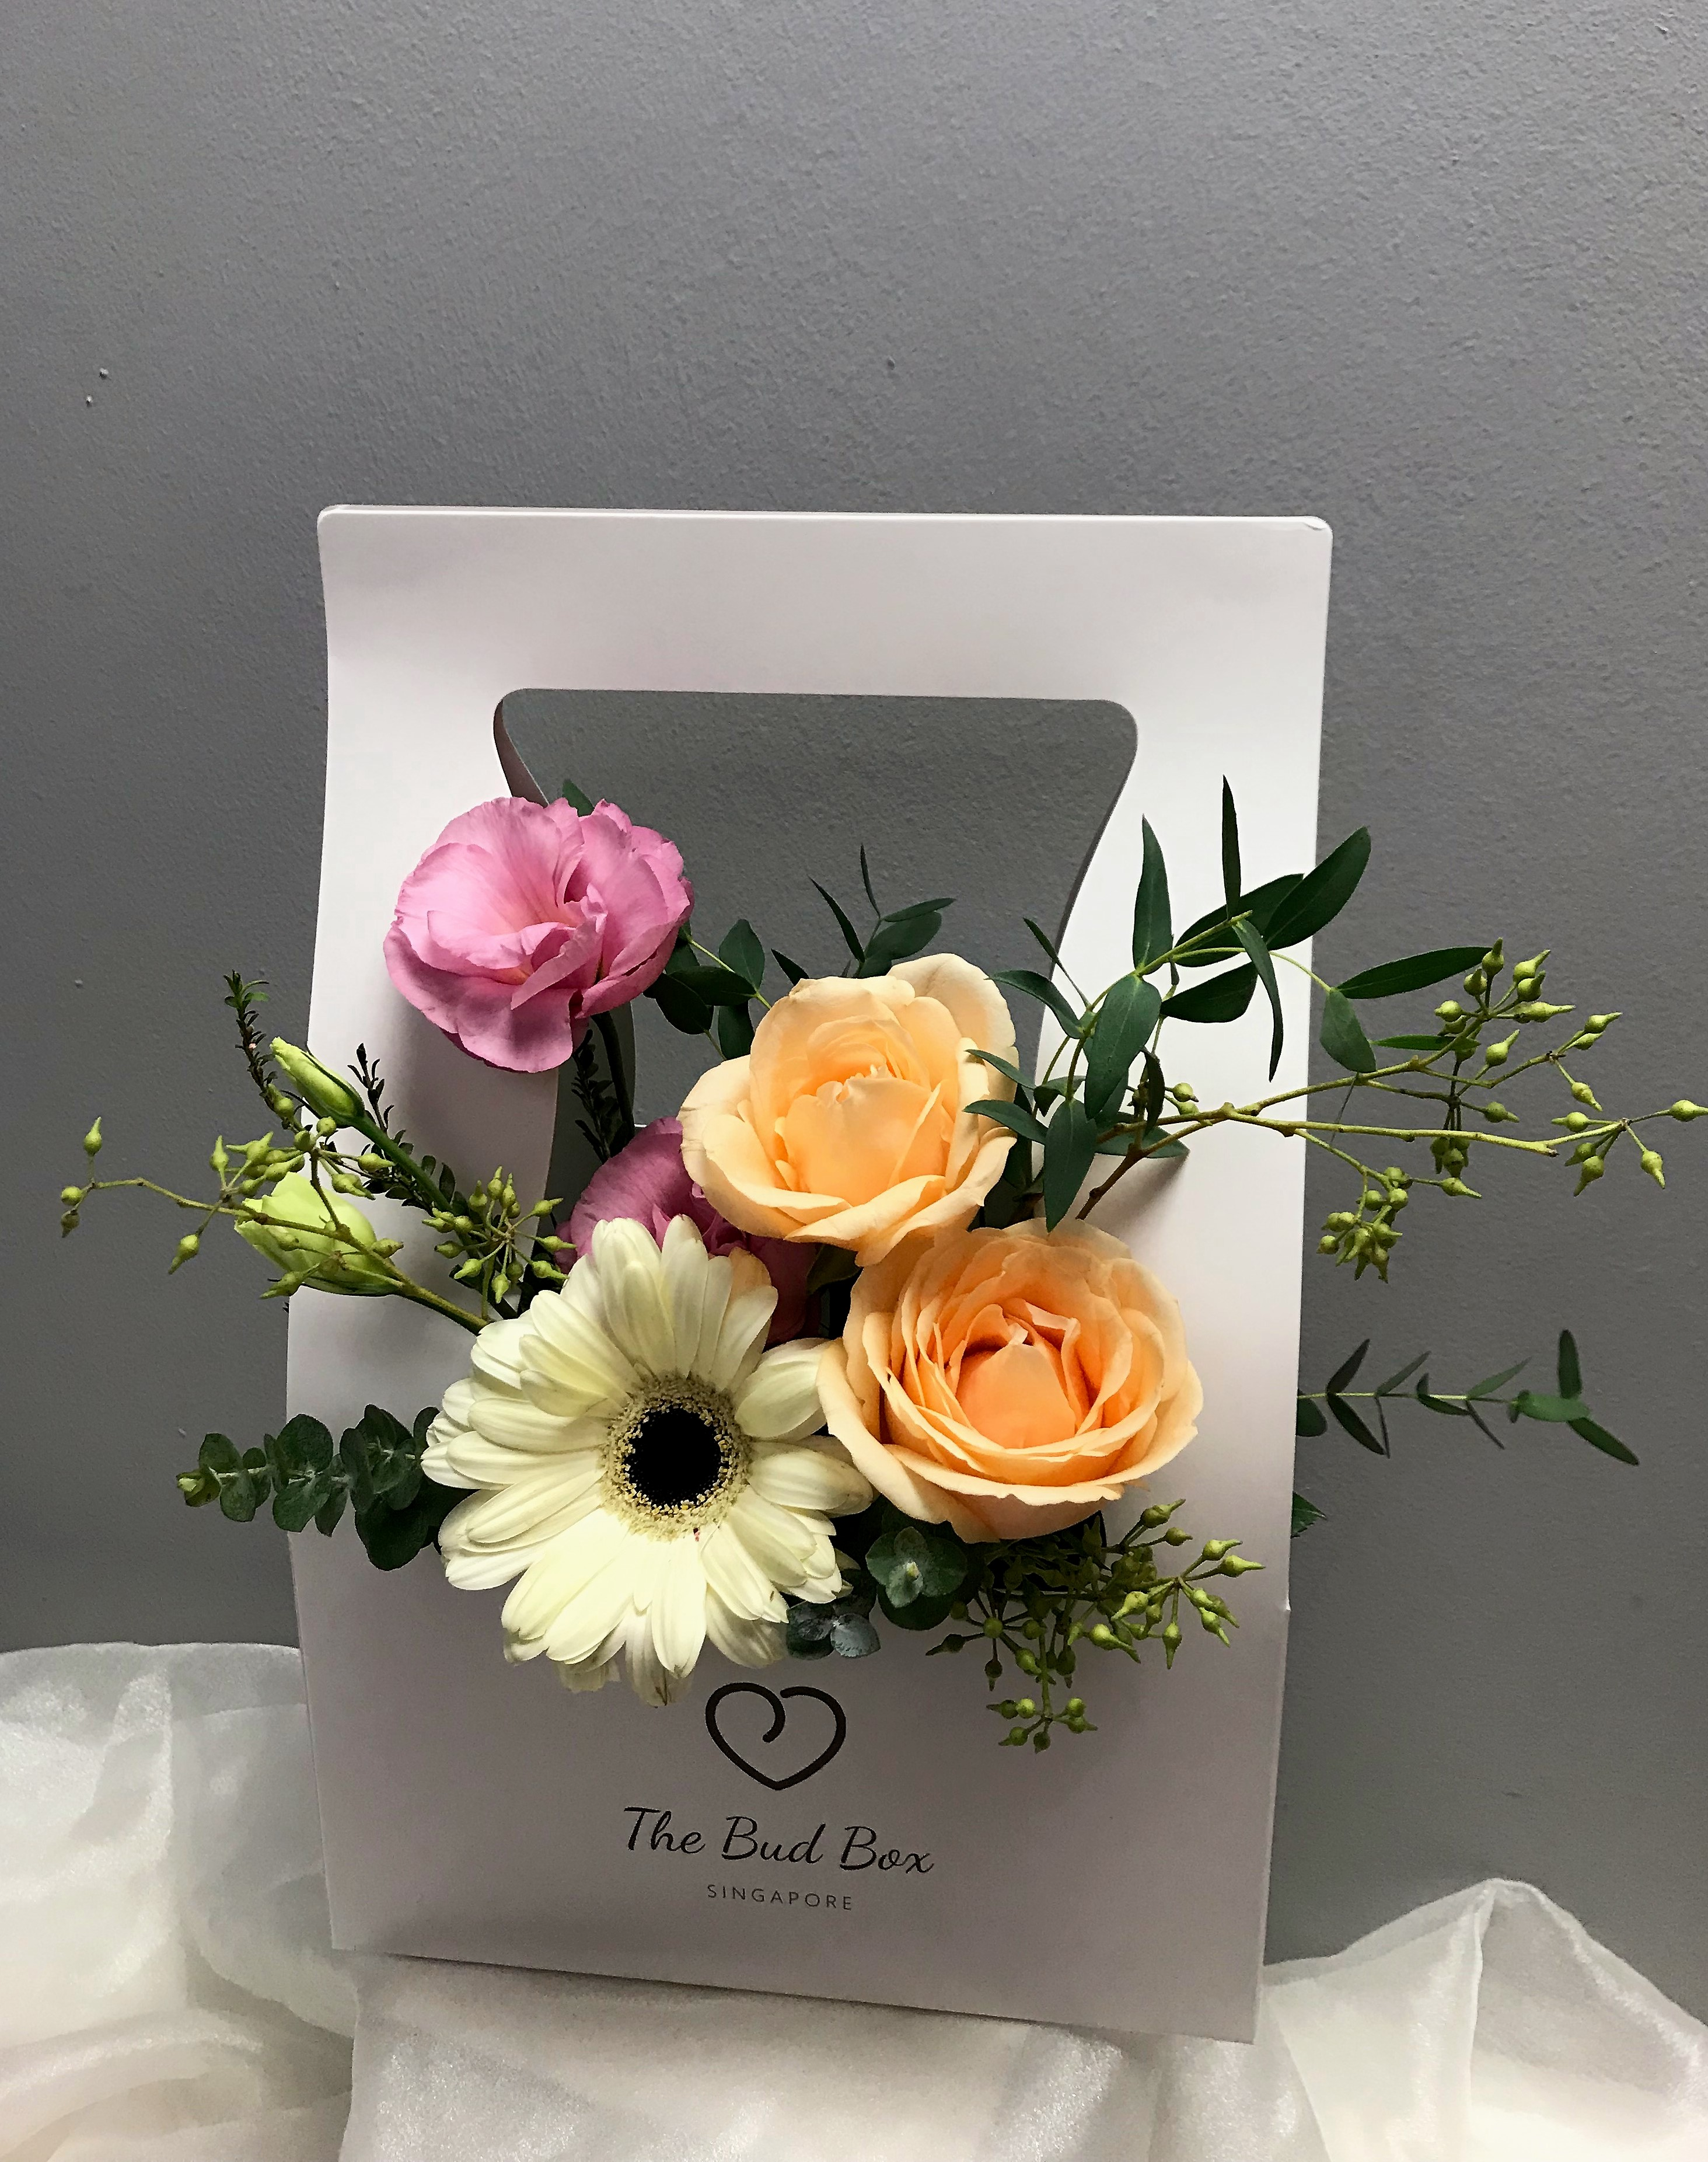 Bud Box for 25 July - Flower in a Box Singapore | Free Same Day Delivery $30